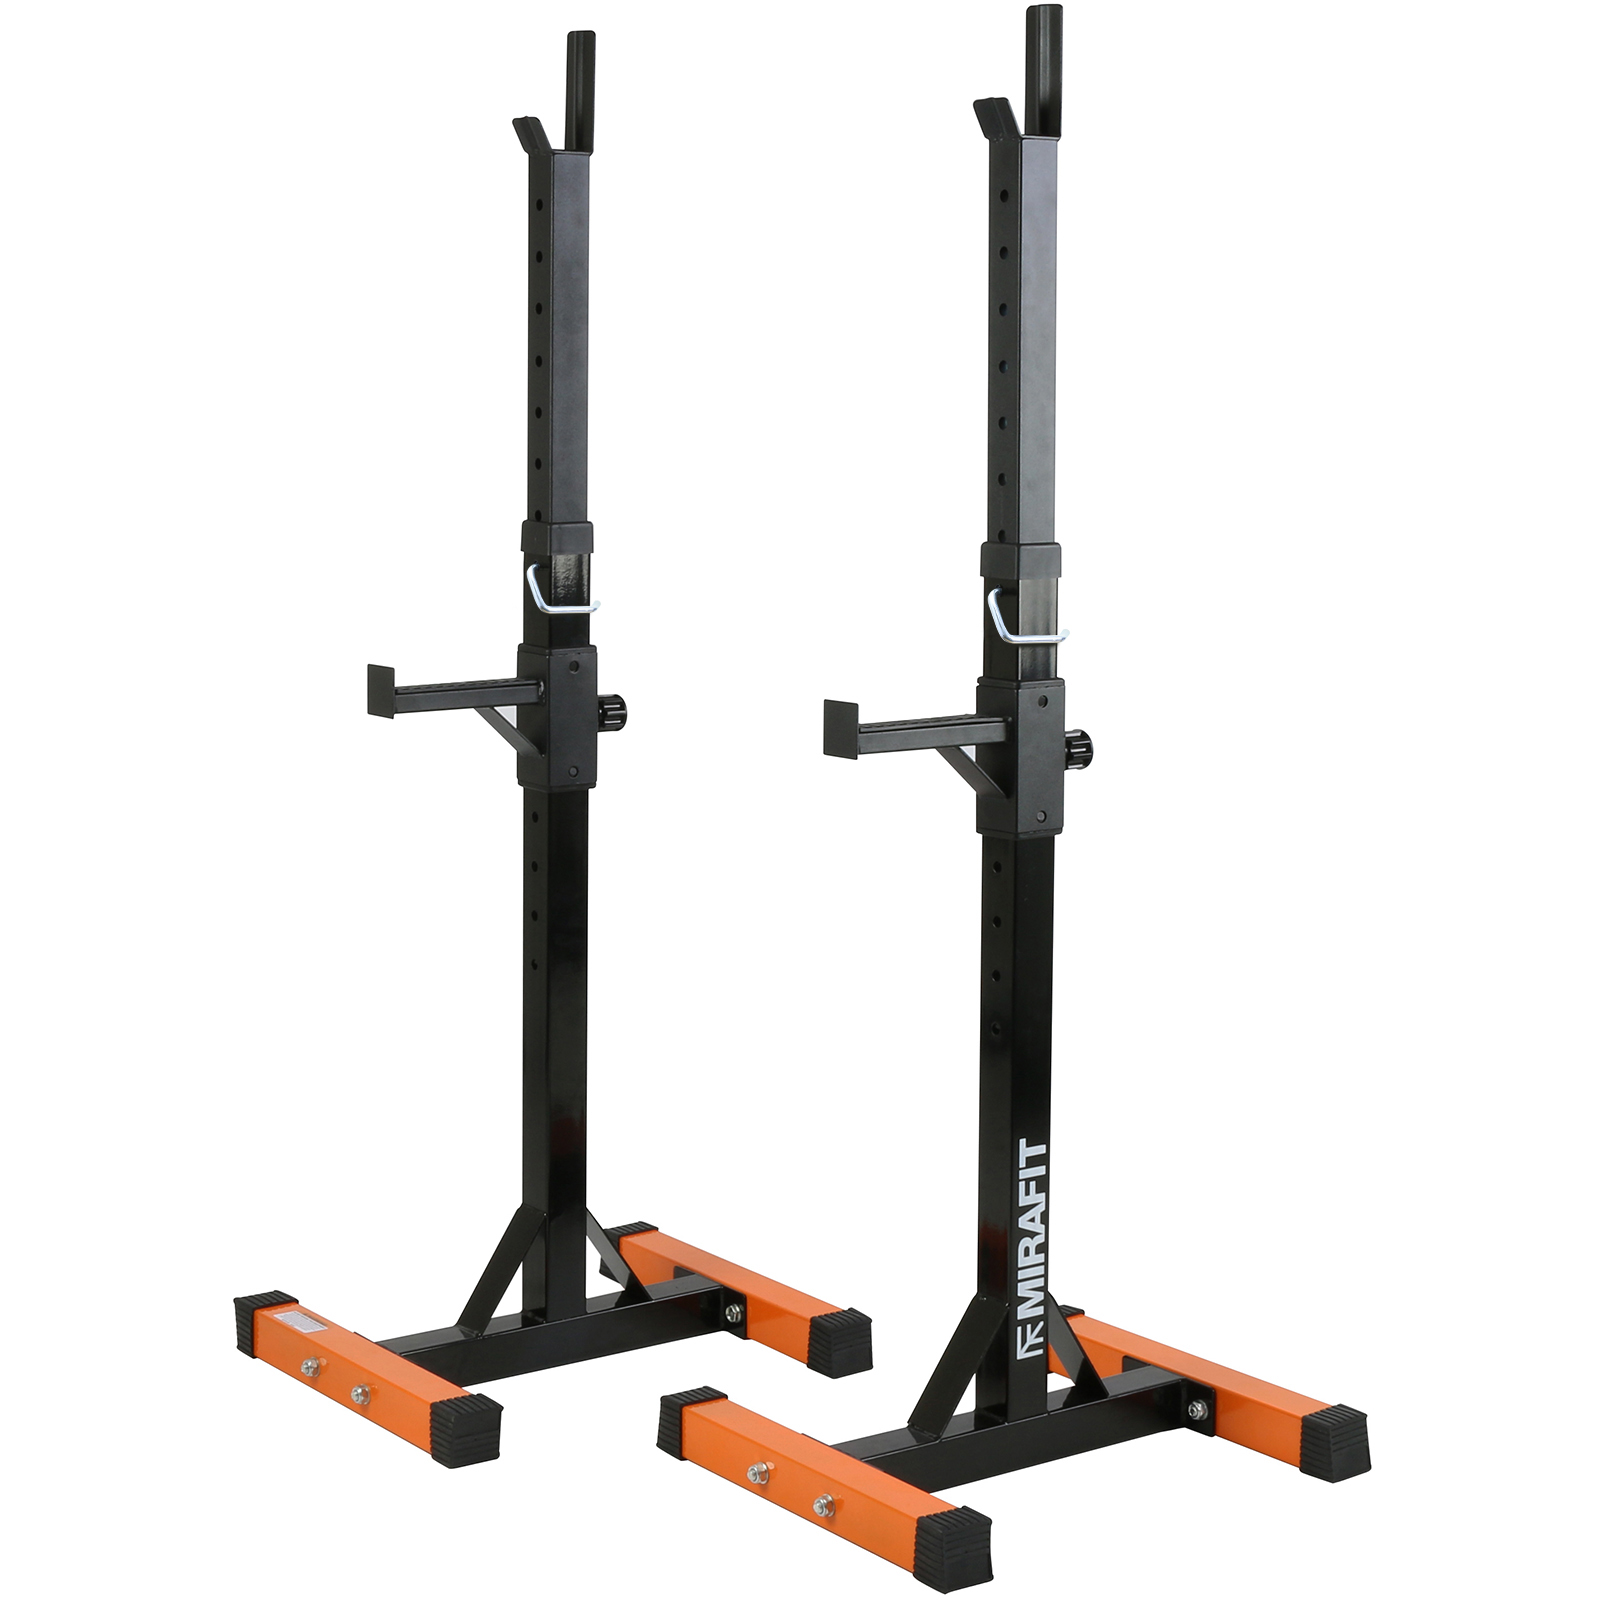 Mirafit 2pc Adjustable Barbell Squat Rack Spotter Stands